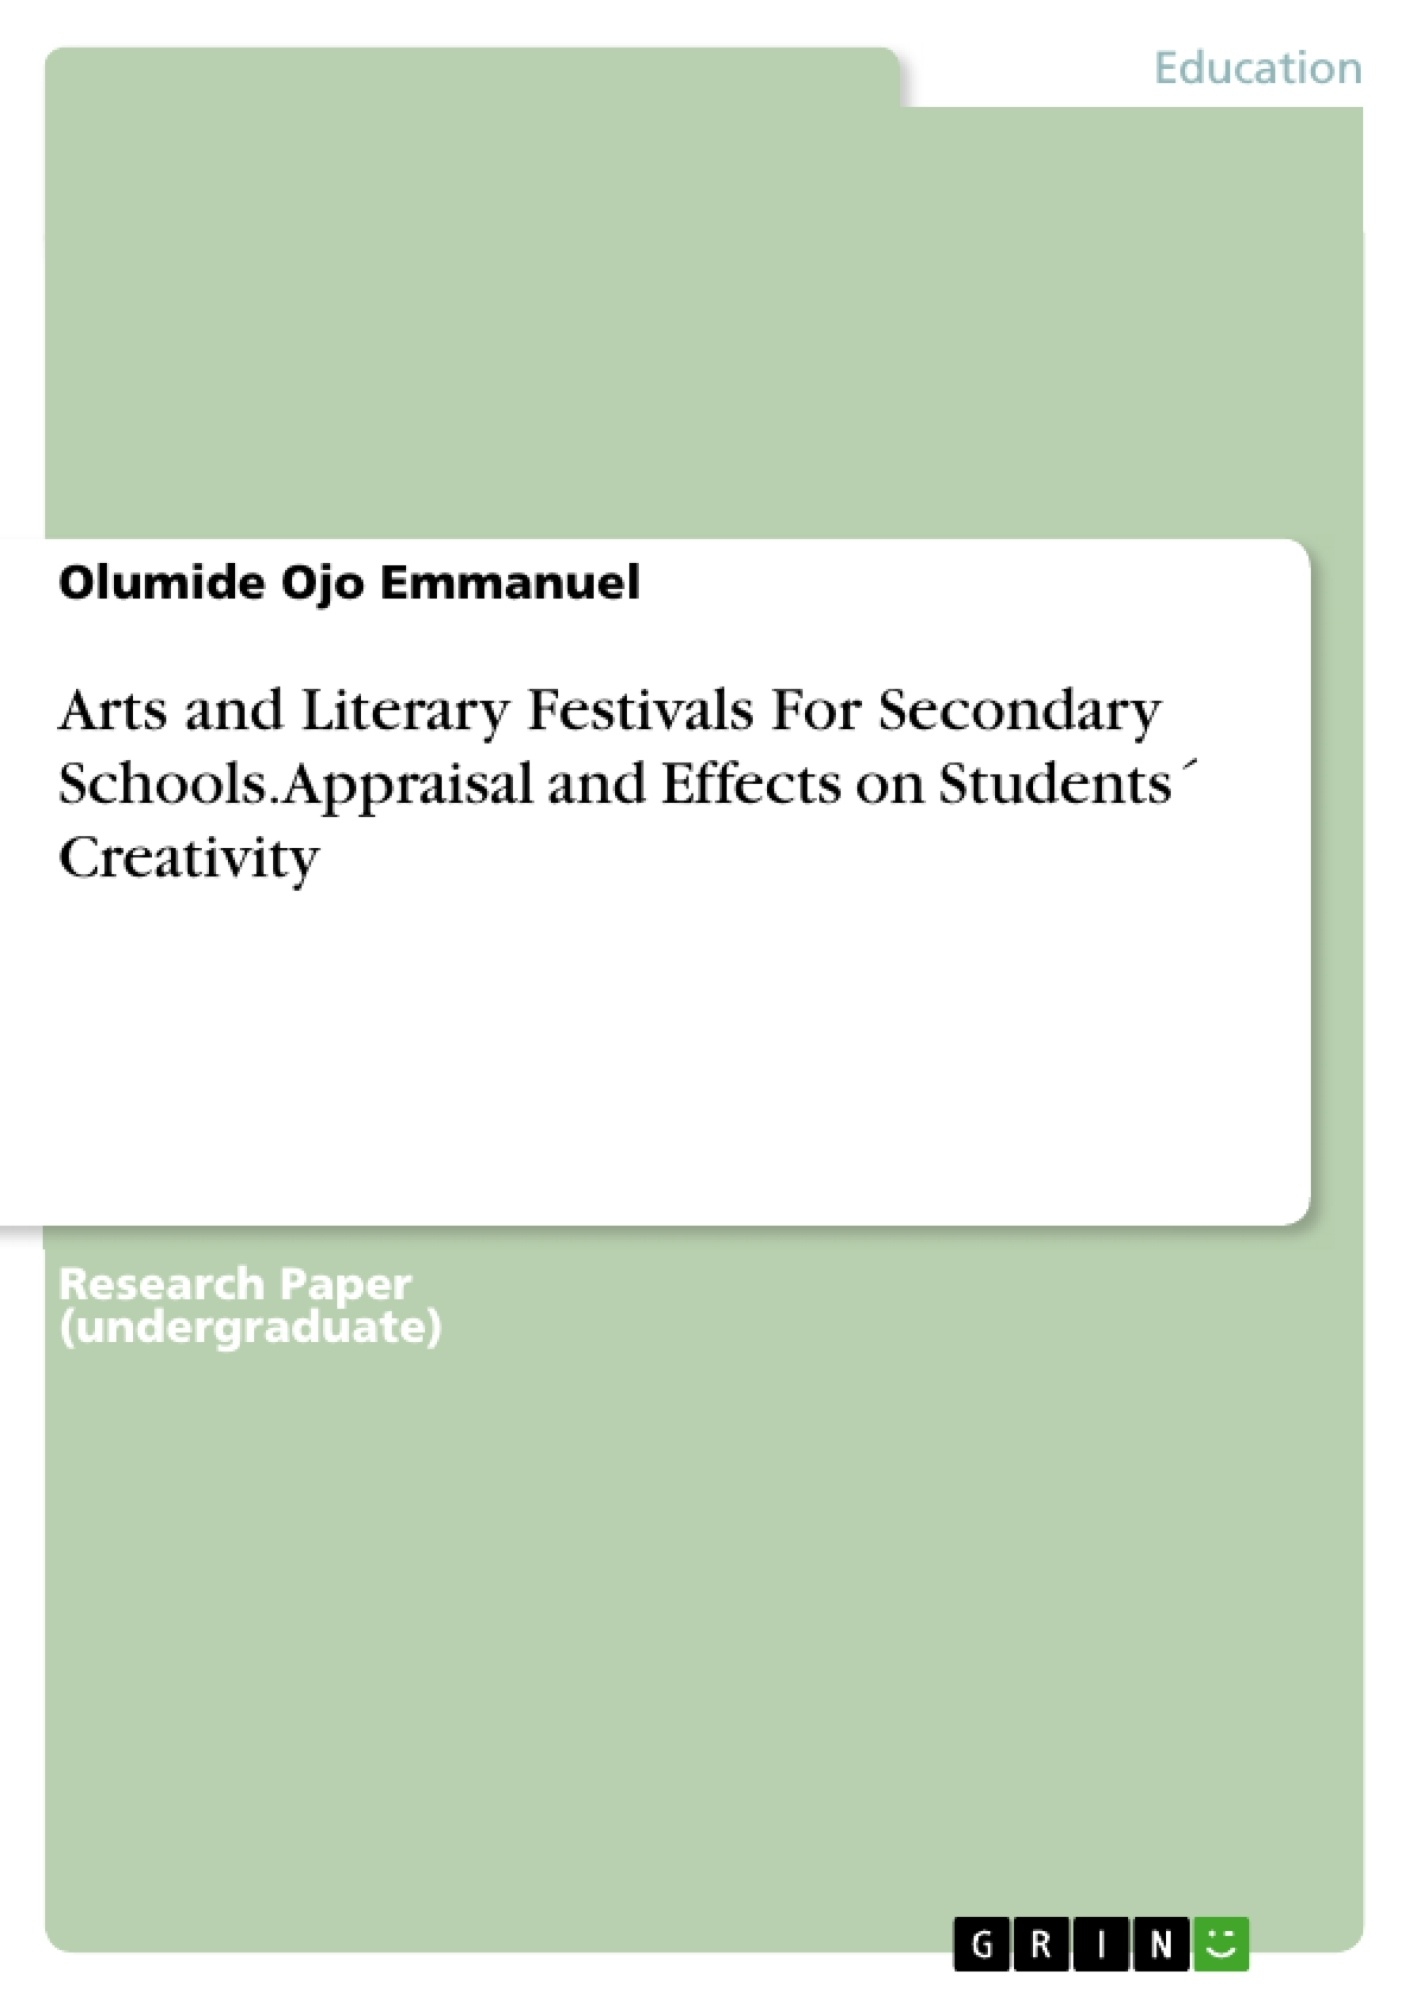 Title: Arts and Literary Festivals For Secondary Schools. Appraisal and Effects on Students´ Creativity